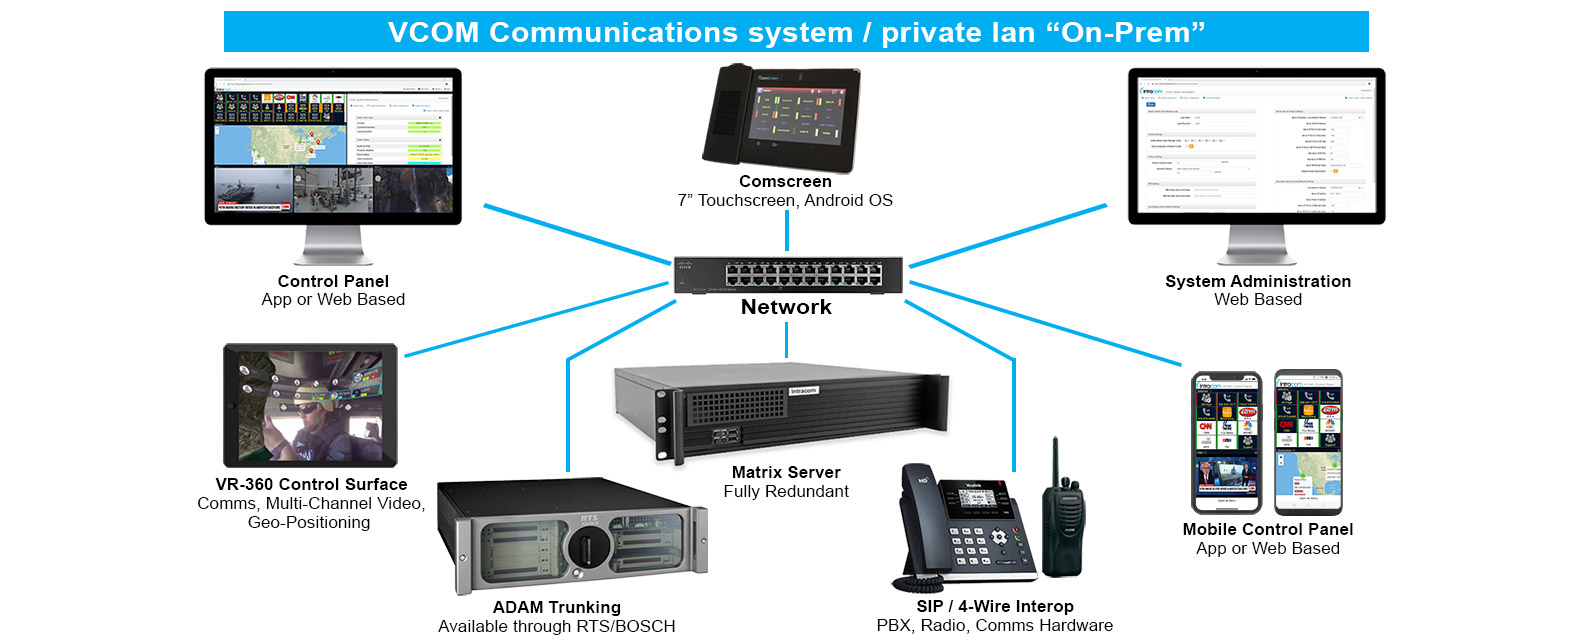 comscreen, adam, sip phone, radio, smart devices all connected to vcom